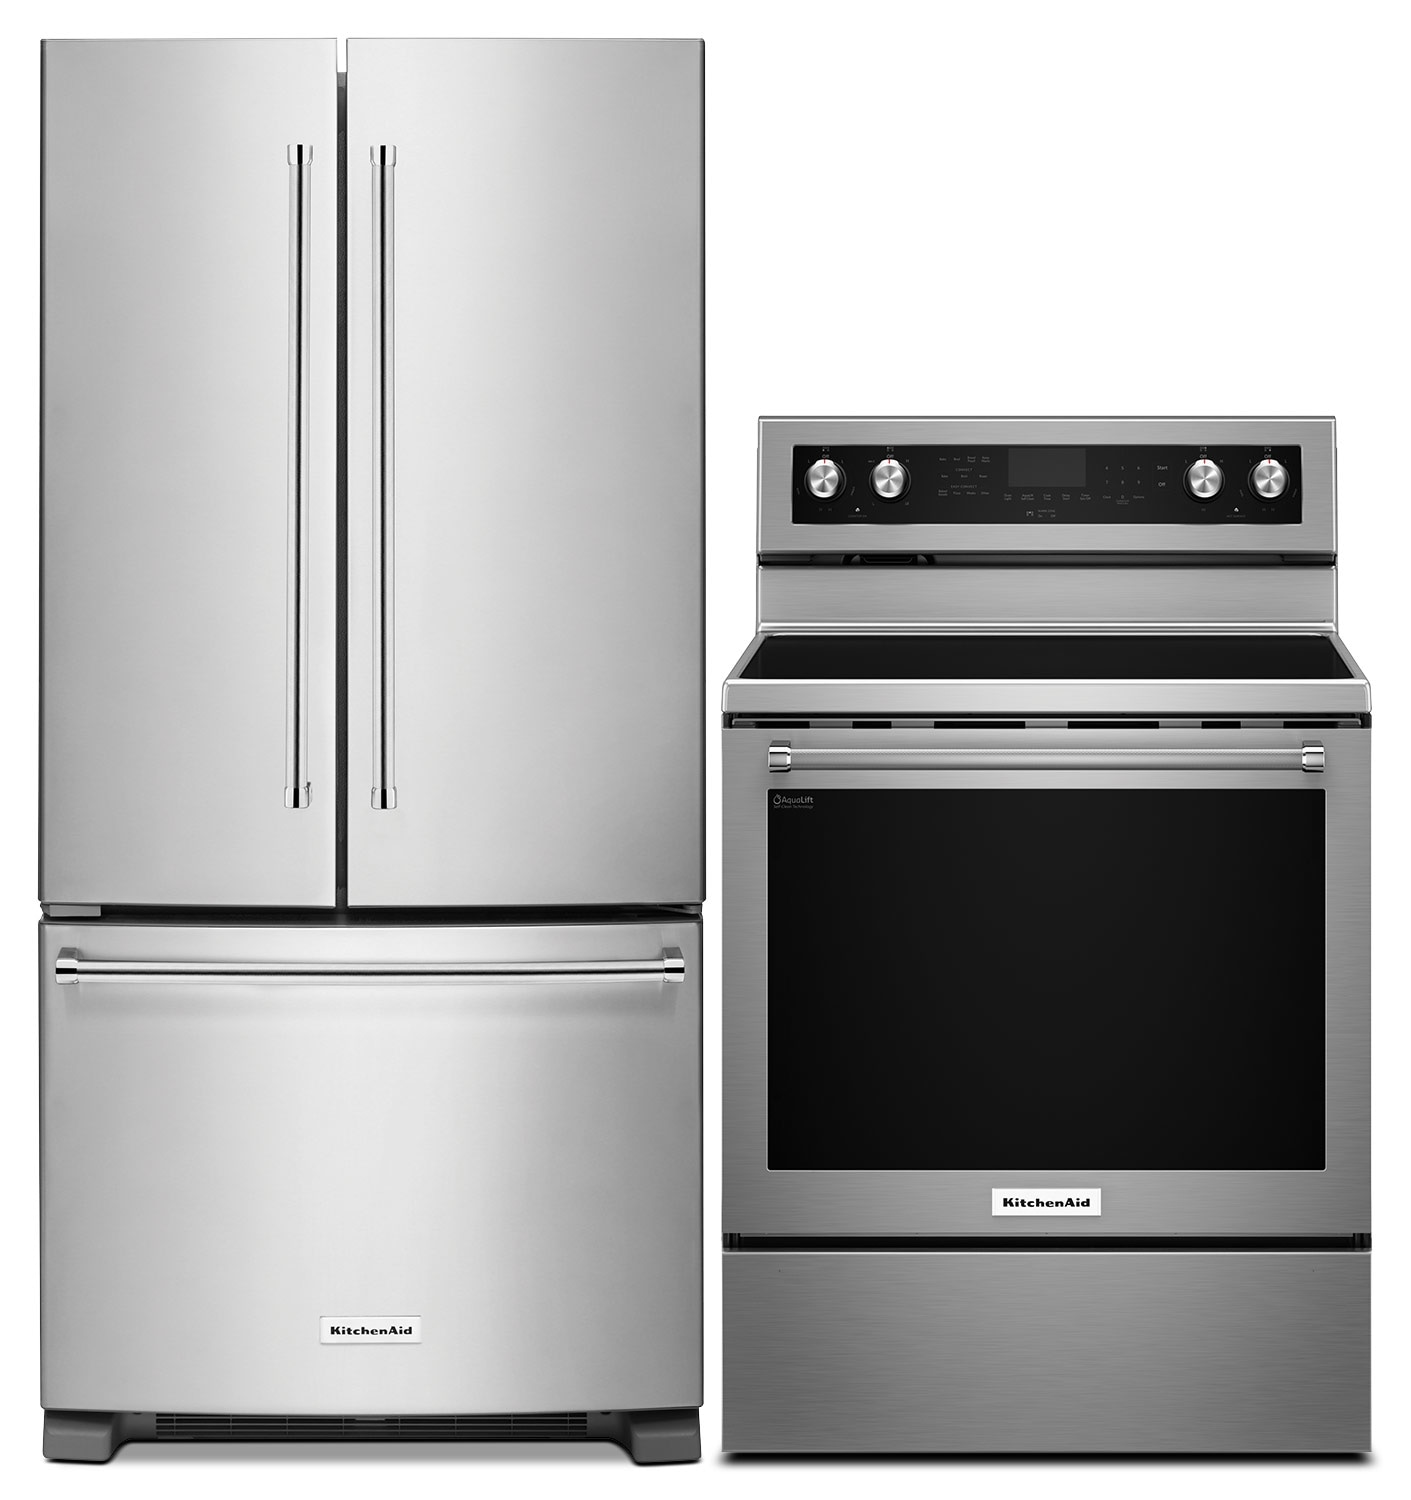 Cooking Products - KitchenAid 19.7 Cu. Ft. French-Door Refrigerator and 6.4 Cu. Ft. Electric Range - Stainless Steel